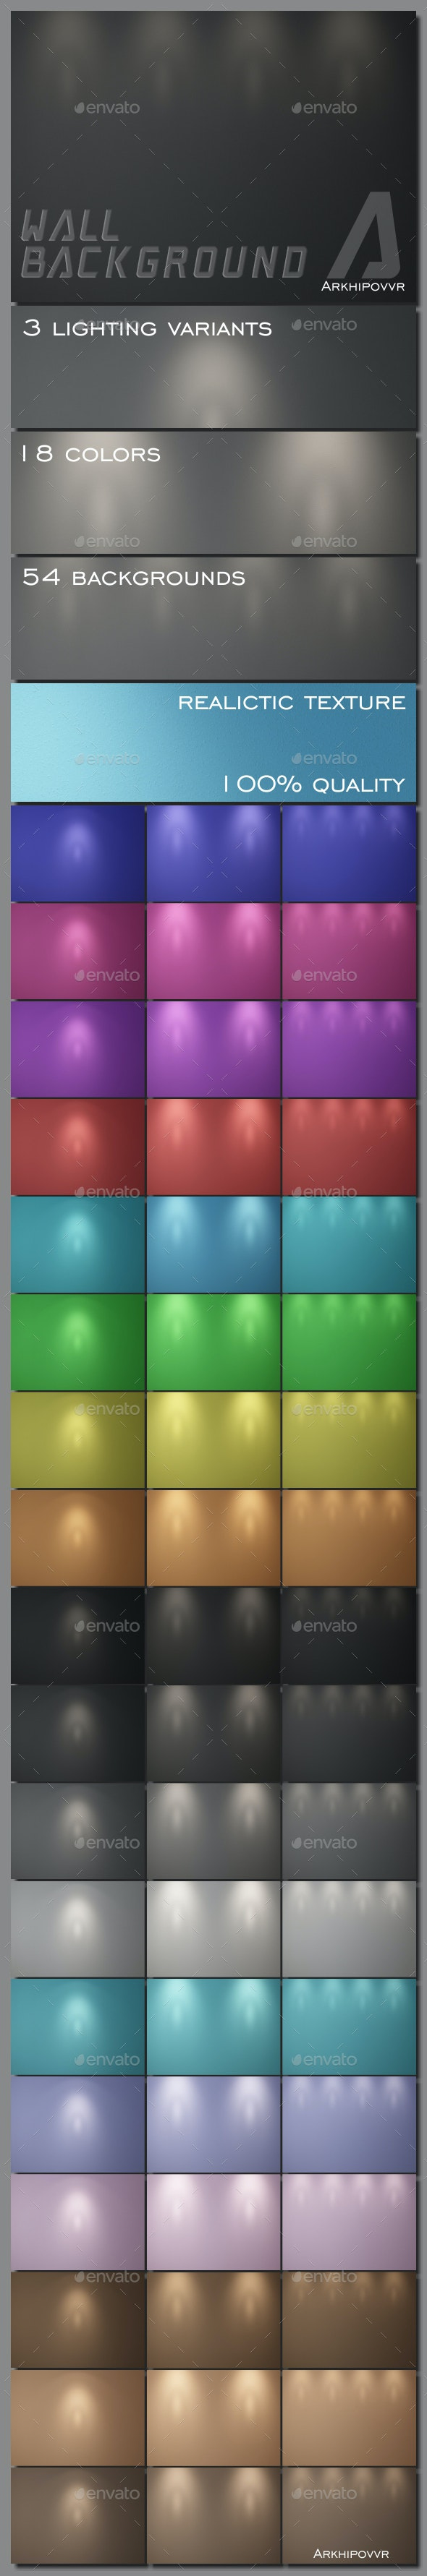 Wall Backgrounds - Backgrounds Graphics